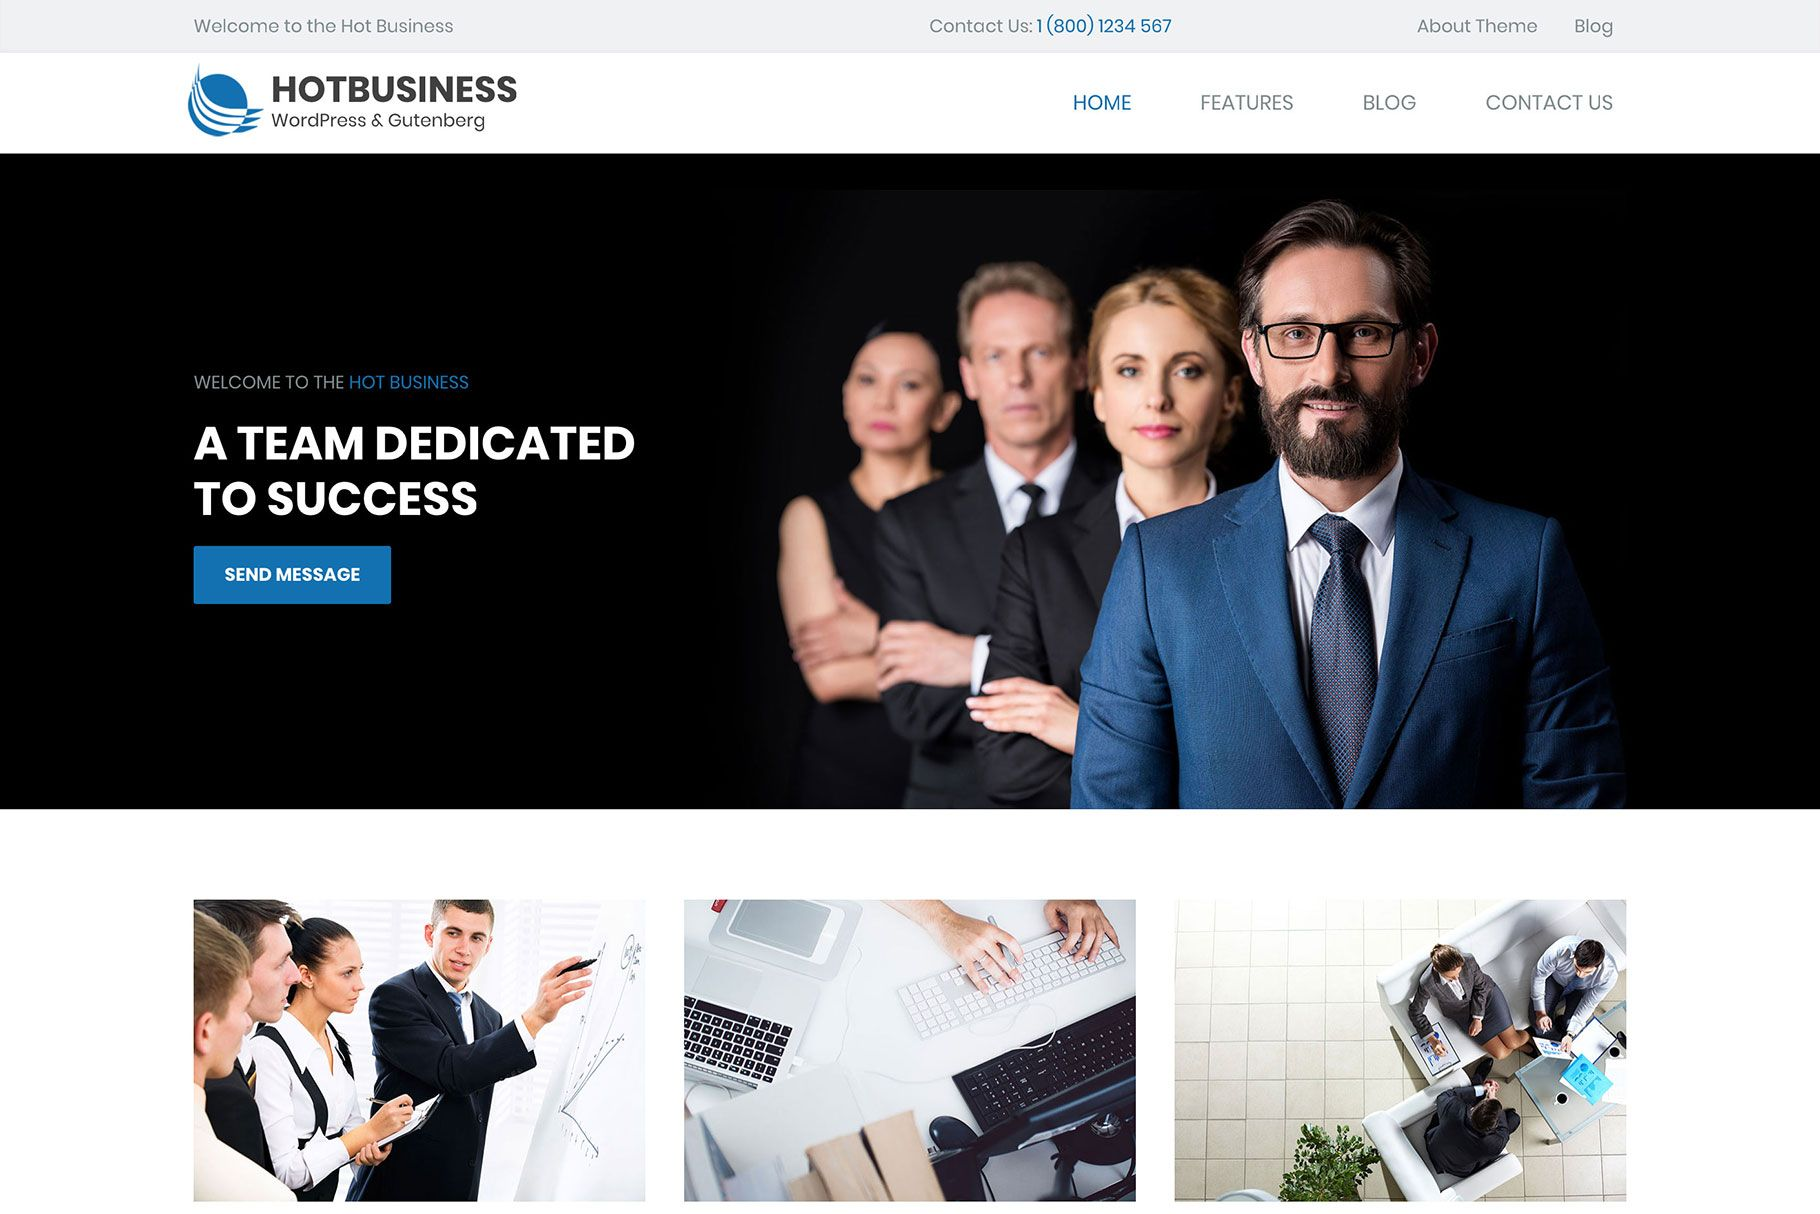 Hot Business - WordPress Gutenberg Theme Screenshot 1